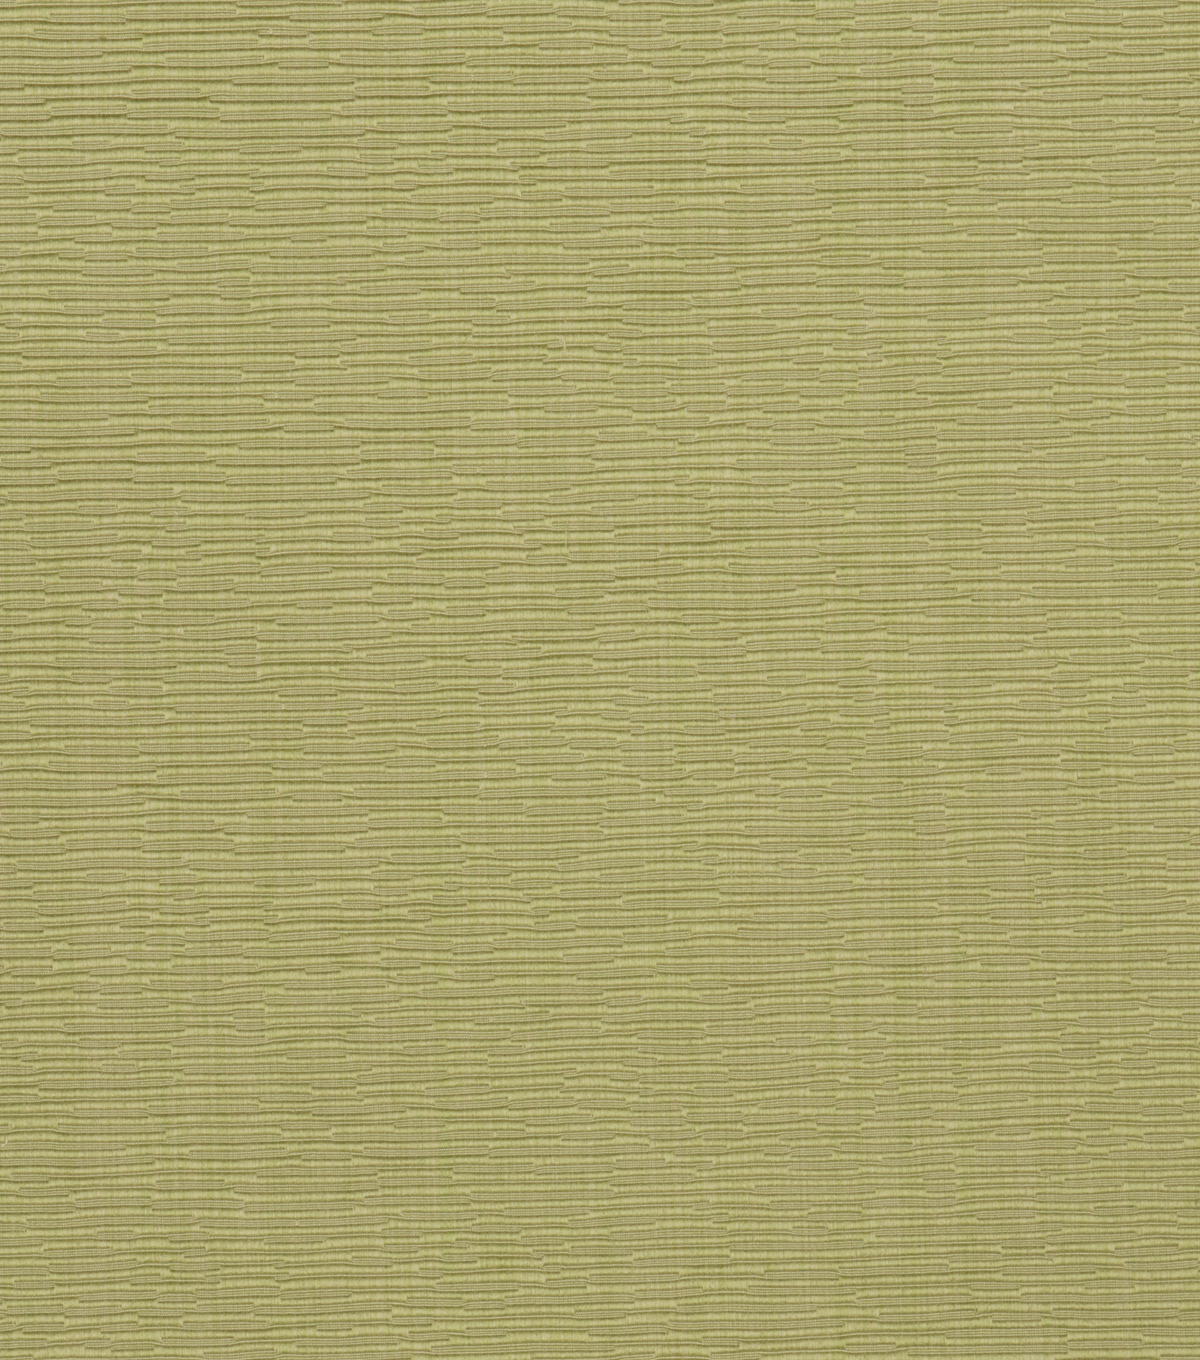 Eaton Square Lightweight Decor Fabric 56\u0022-Panoramic/Green Apple